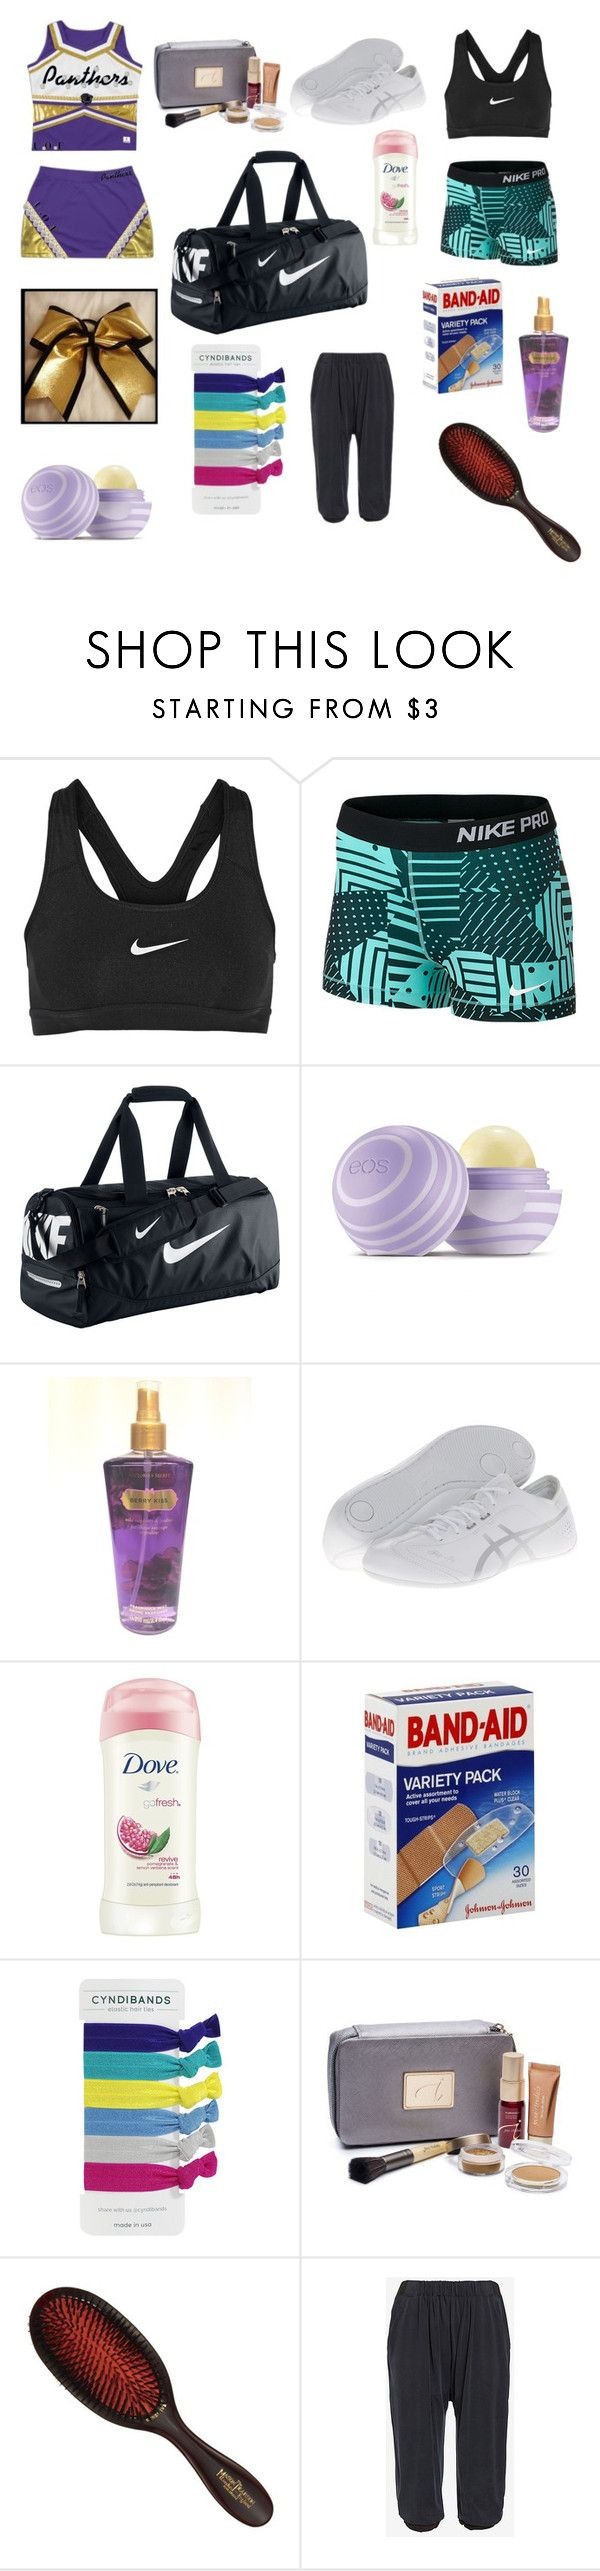 """whats in my cheer bag"" by stylegal1221 on Polyvore featuring NIKE, Eos, Victoria's Secret, Asics, Dove, Jane Iredale, Mason Pearson and Skin"